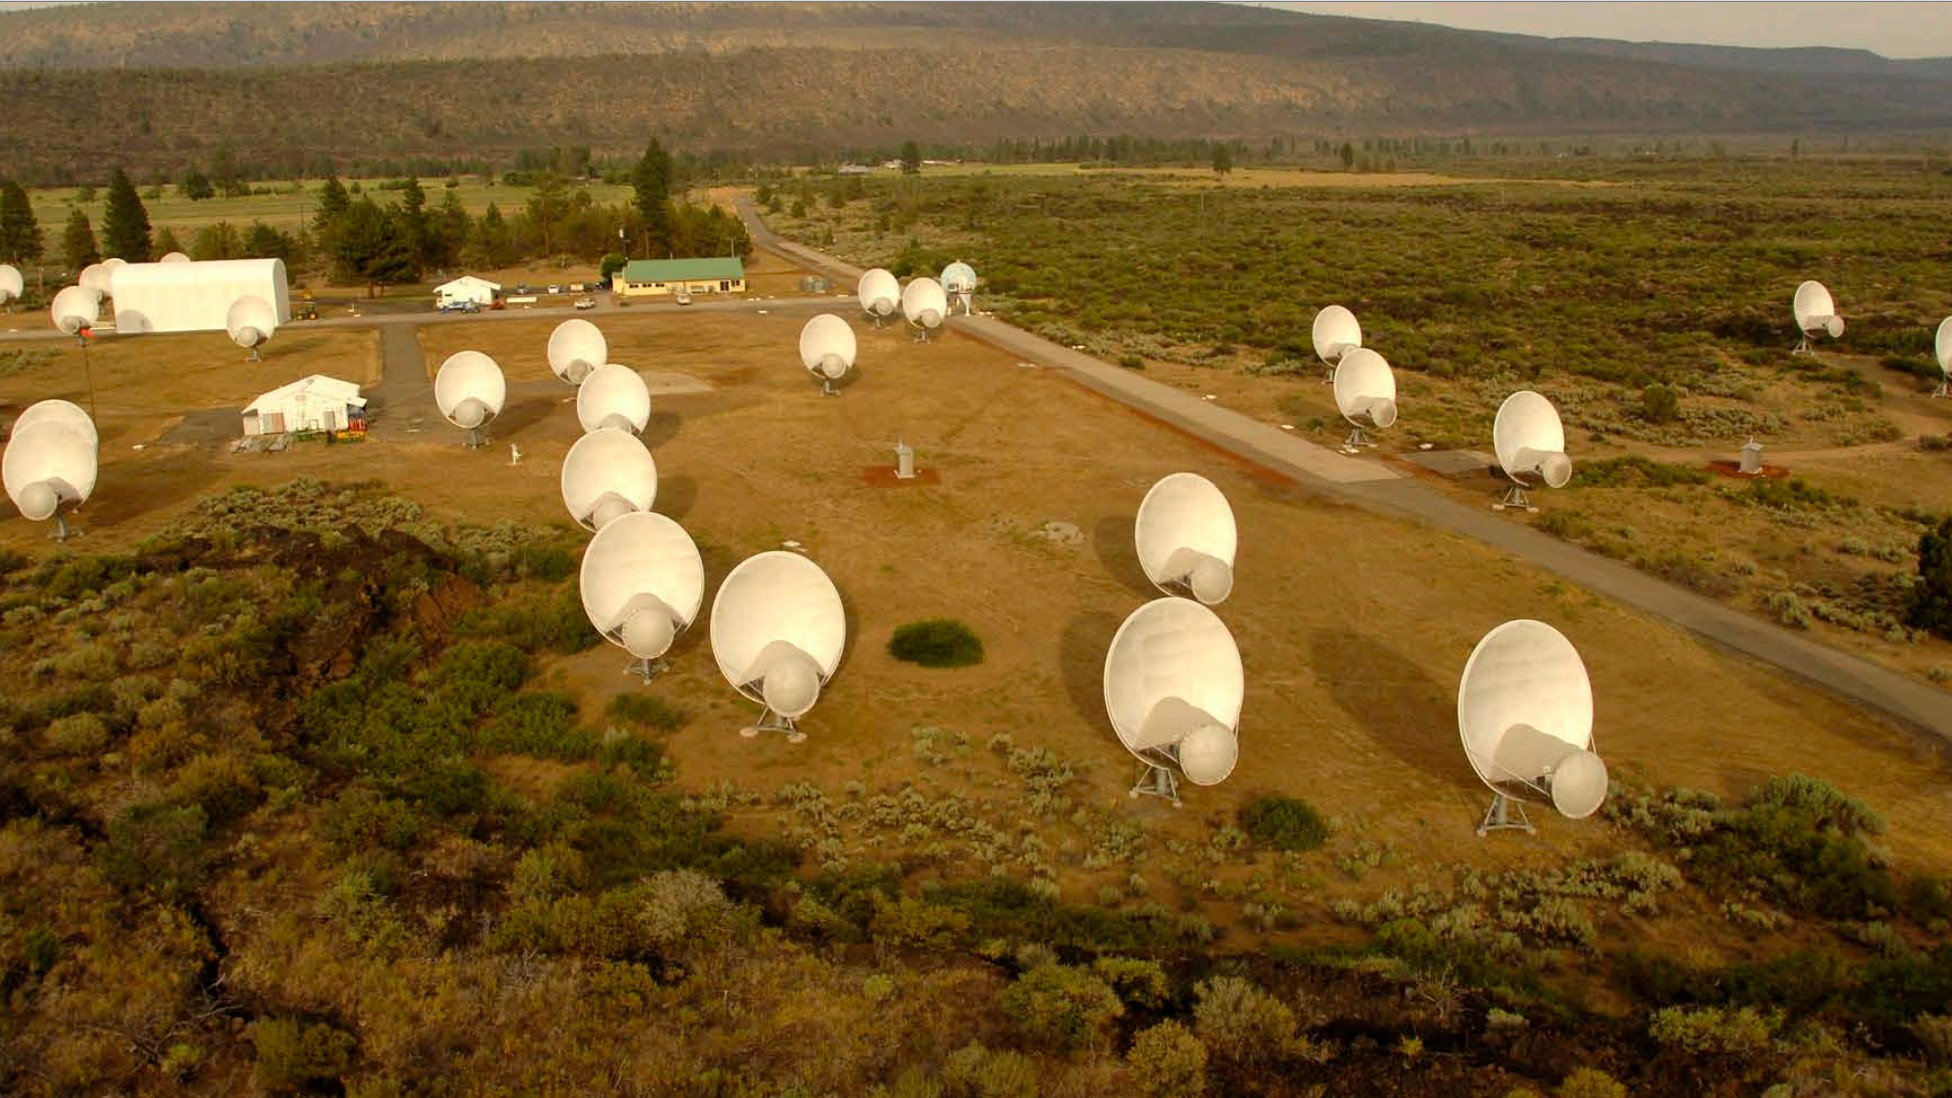 Here's the Plan to Eavesdrop on Aliens' Interplanetary Communications